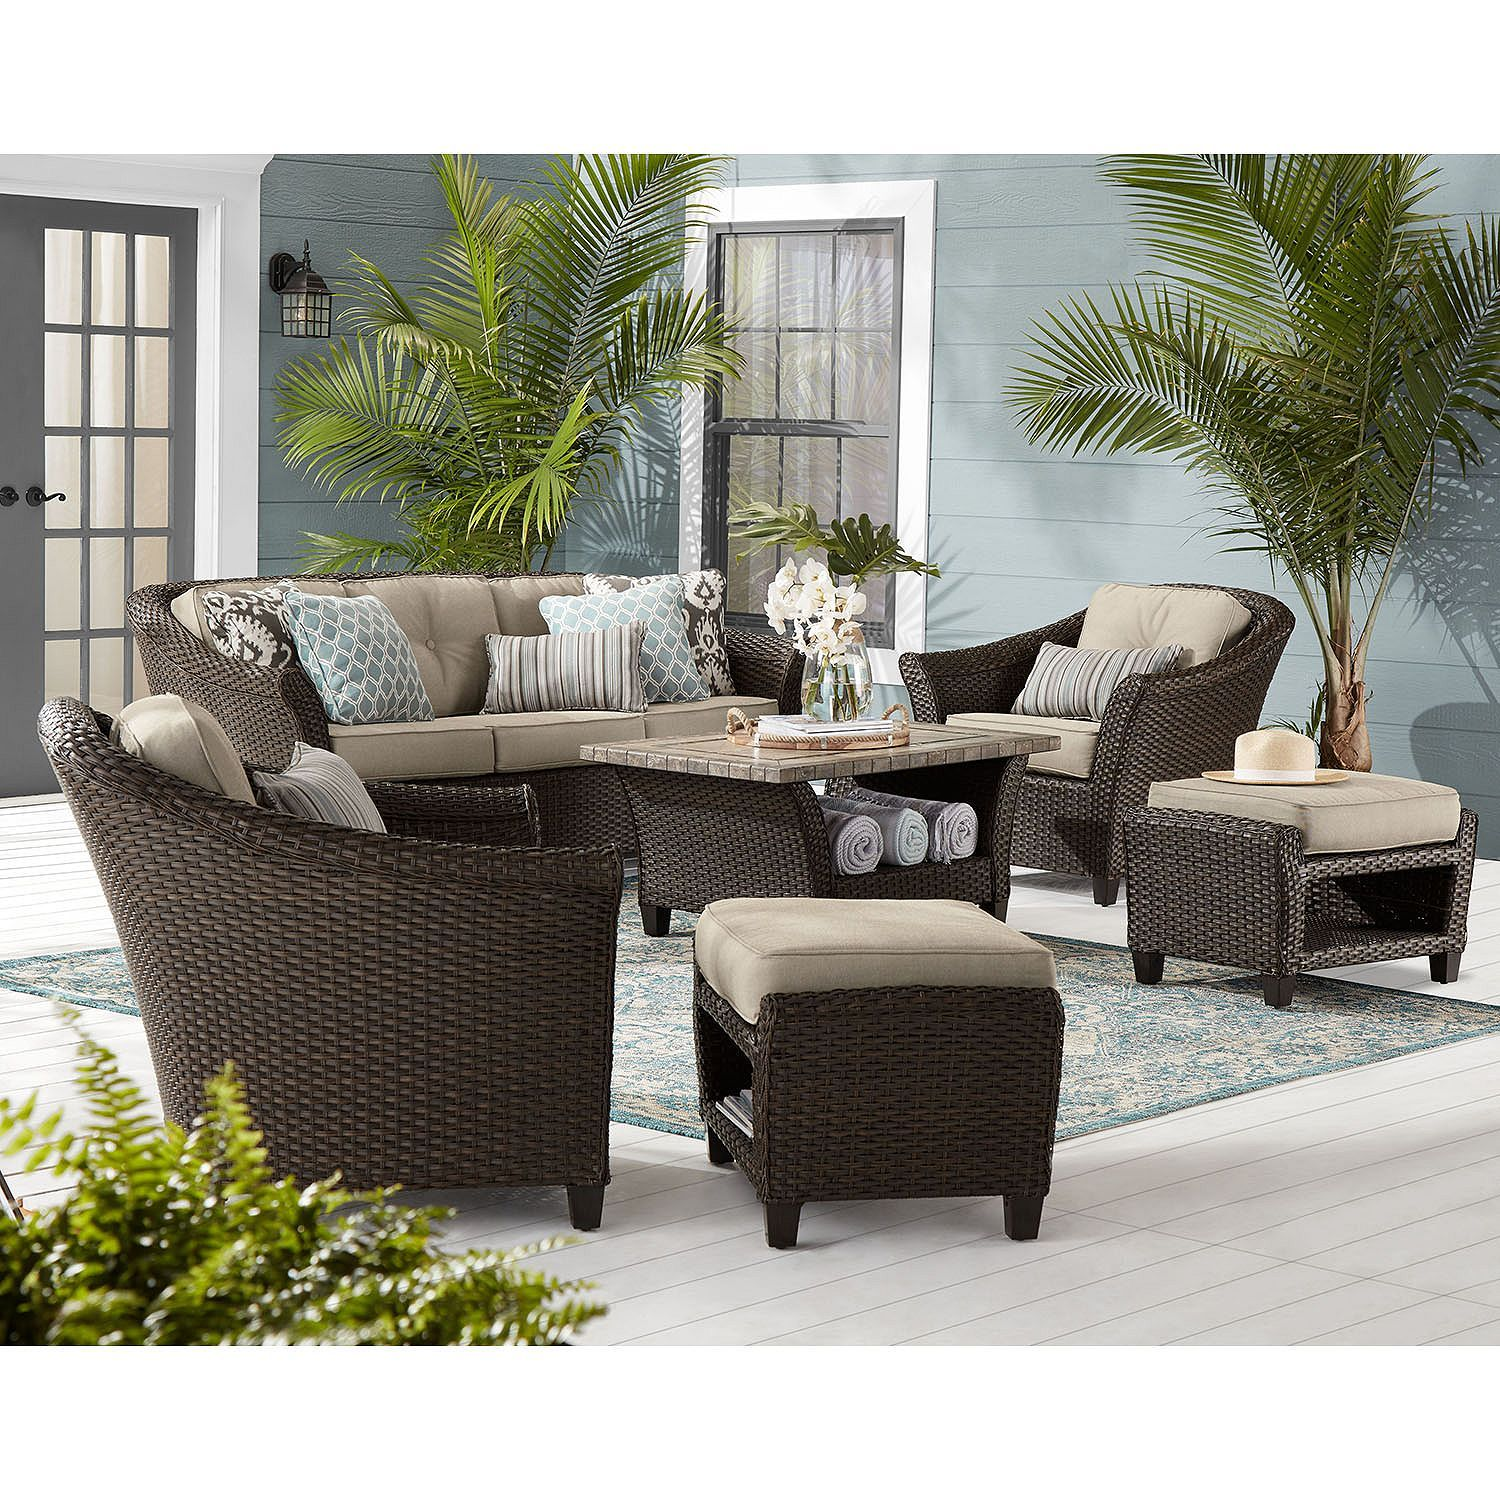 Member S Mark Agio Collection Toronto Seating Set Sam S Club Outdoor Furniture Sets Outdoor Furniture Inspiration Outdoor Furniture